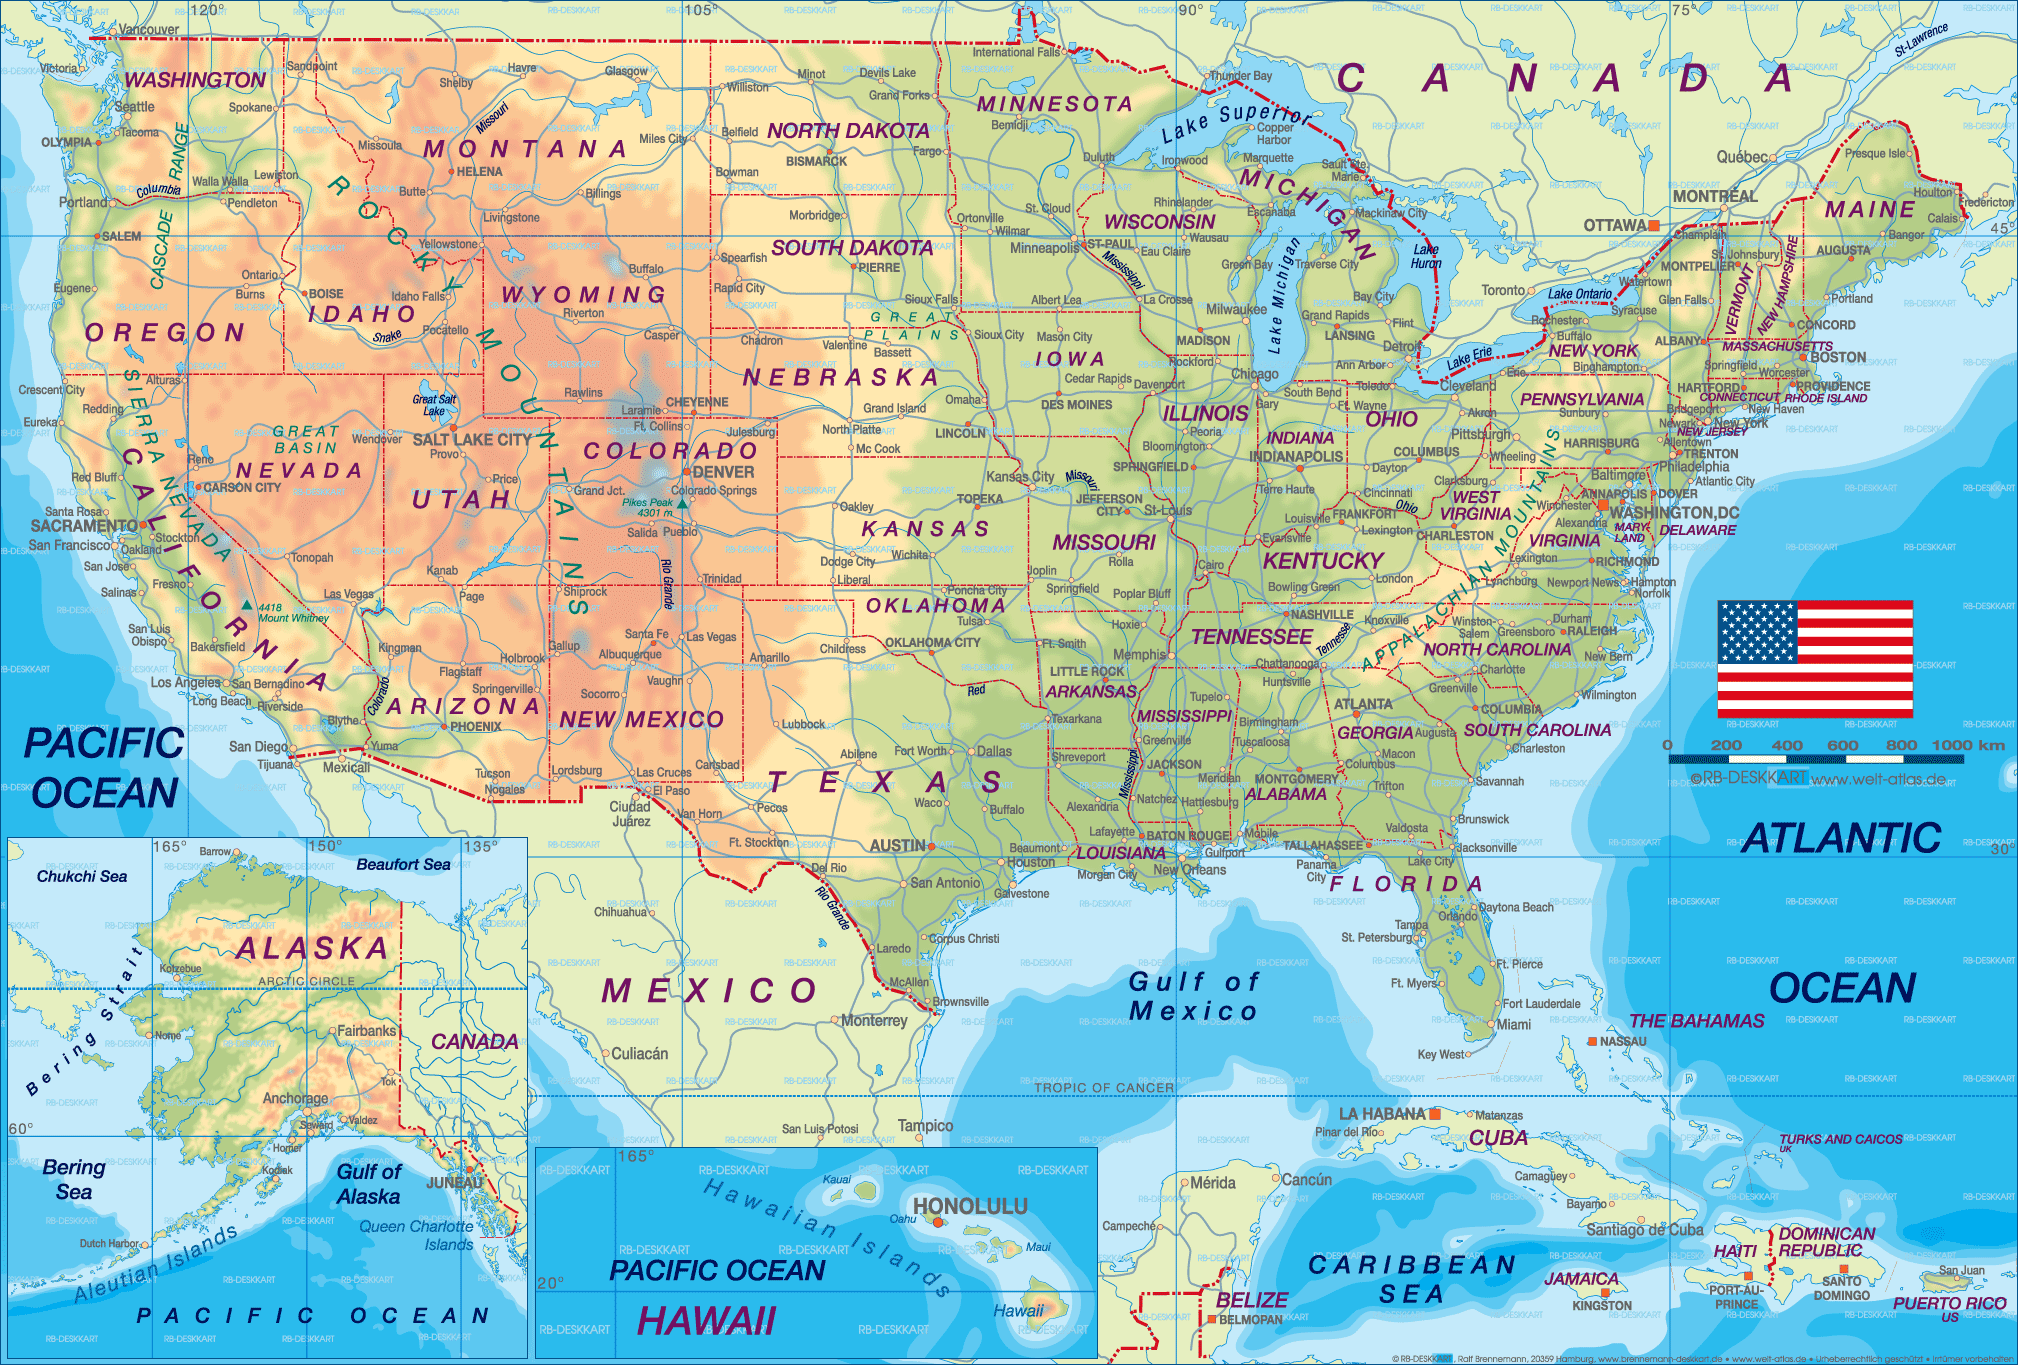 United States Map Showing States And Cities Maps Of USA Most - Usa map with states and cities